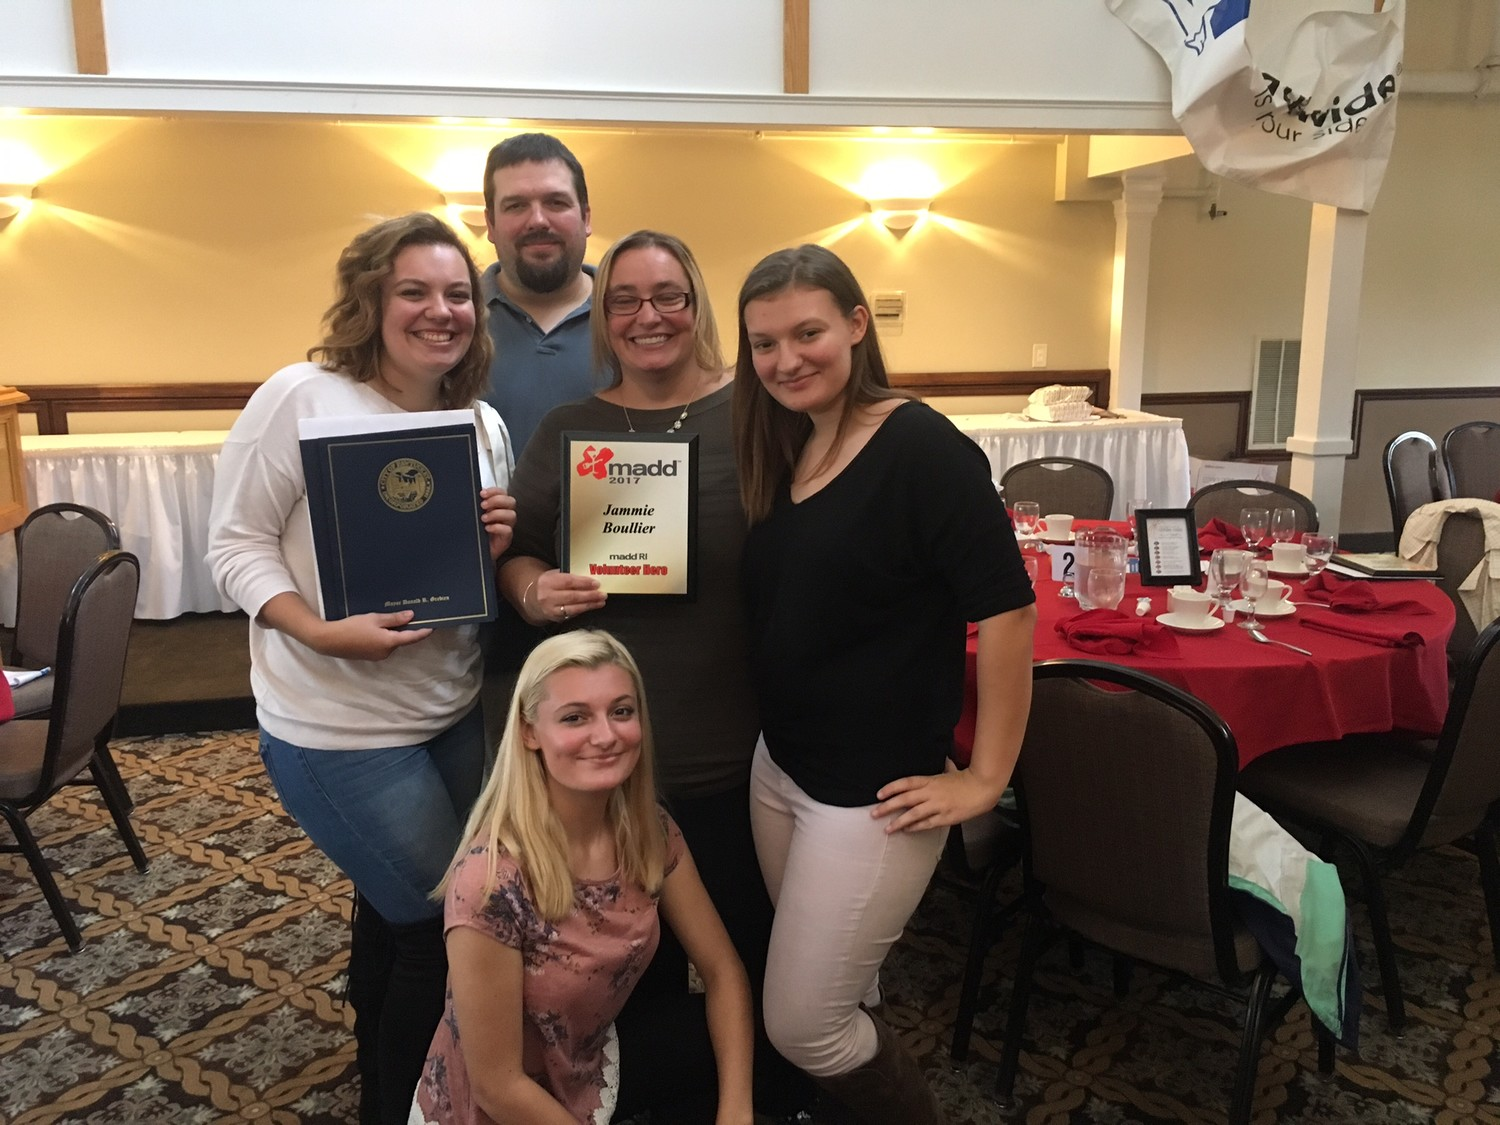 JAM AND FAM: Jammie Boullier was awarded the Volunteer Hero award for her vocal efforts to raise awareness about impaired driving. She is pictured with her daughters Kyra (left), Isabelle (kneeling) and Megan (right), as well as her husband, Mathew.